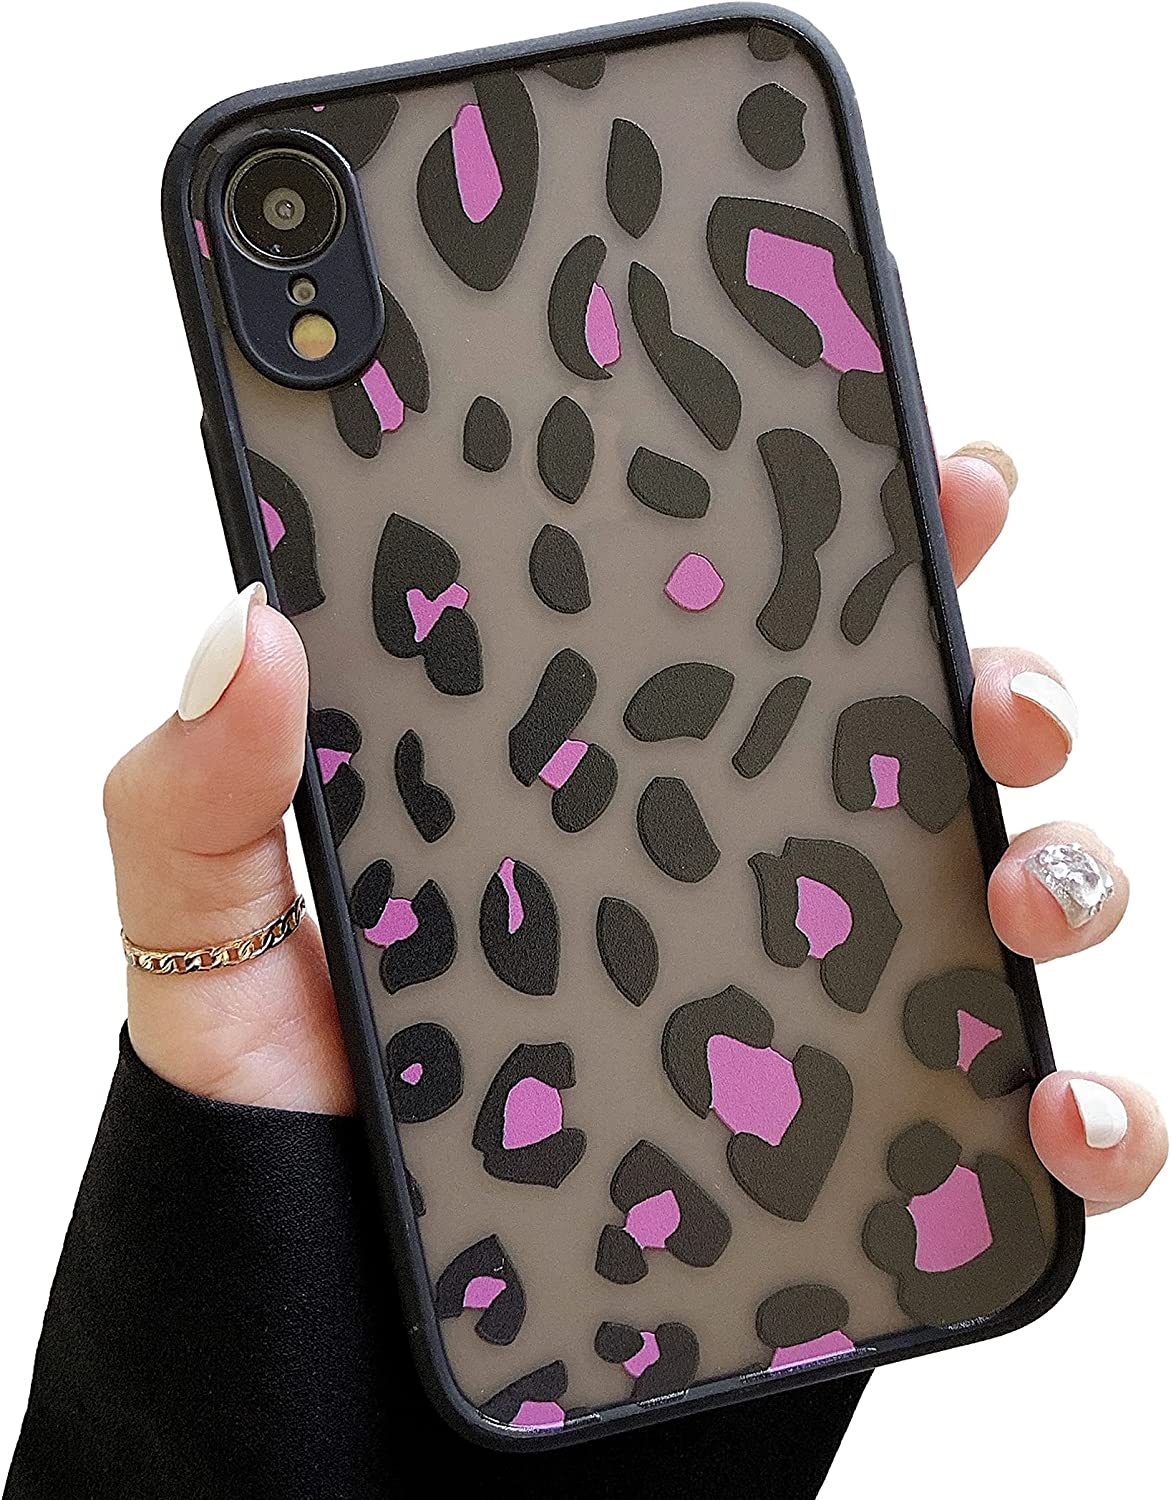 ZTOFERA Compatible with iPhone XR Case, Shockproof Silicone Protective Bumper Translucent Frosted Hard PC Back Case Leopard Zebra Pattern Slim Phone Cover for iPhone XR (Leopard - Hot Pink)